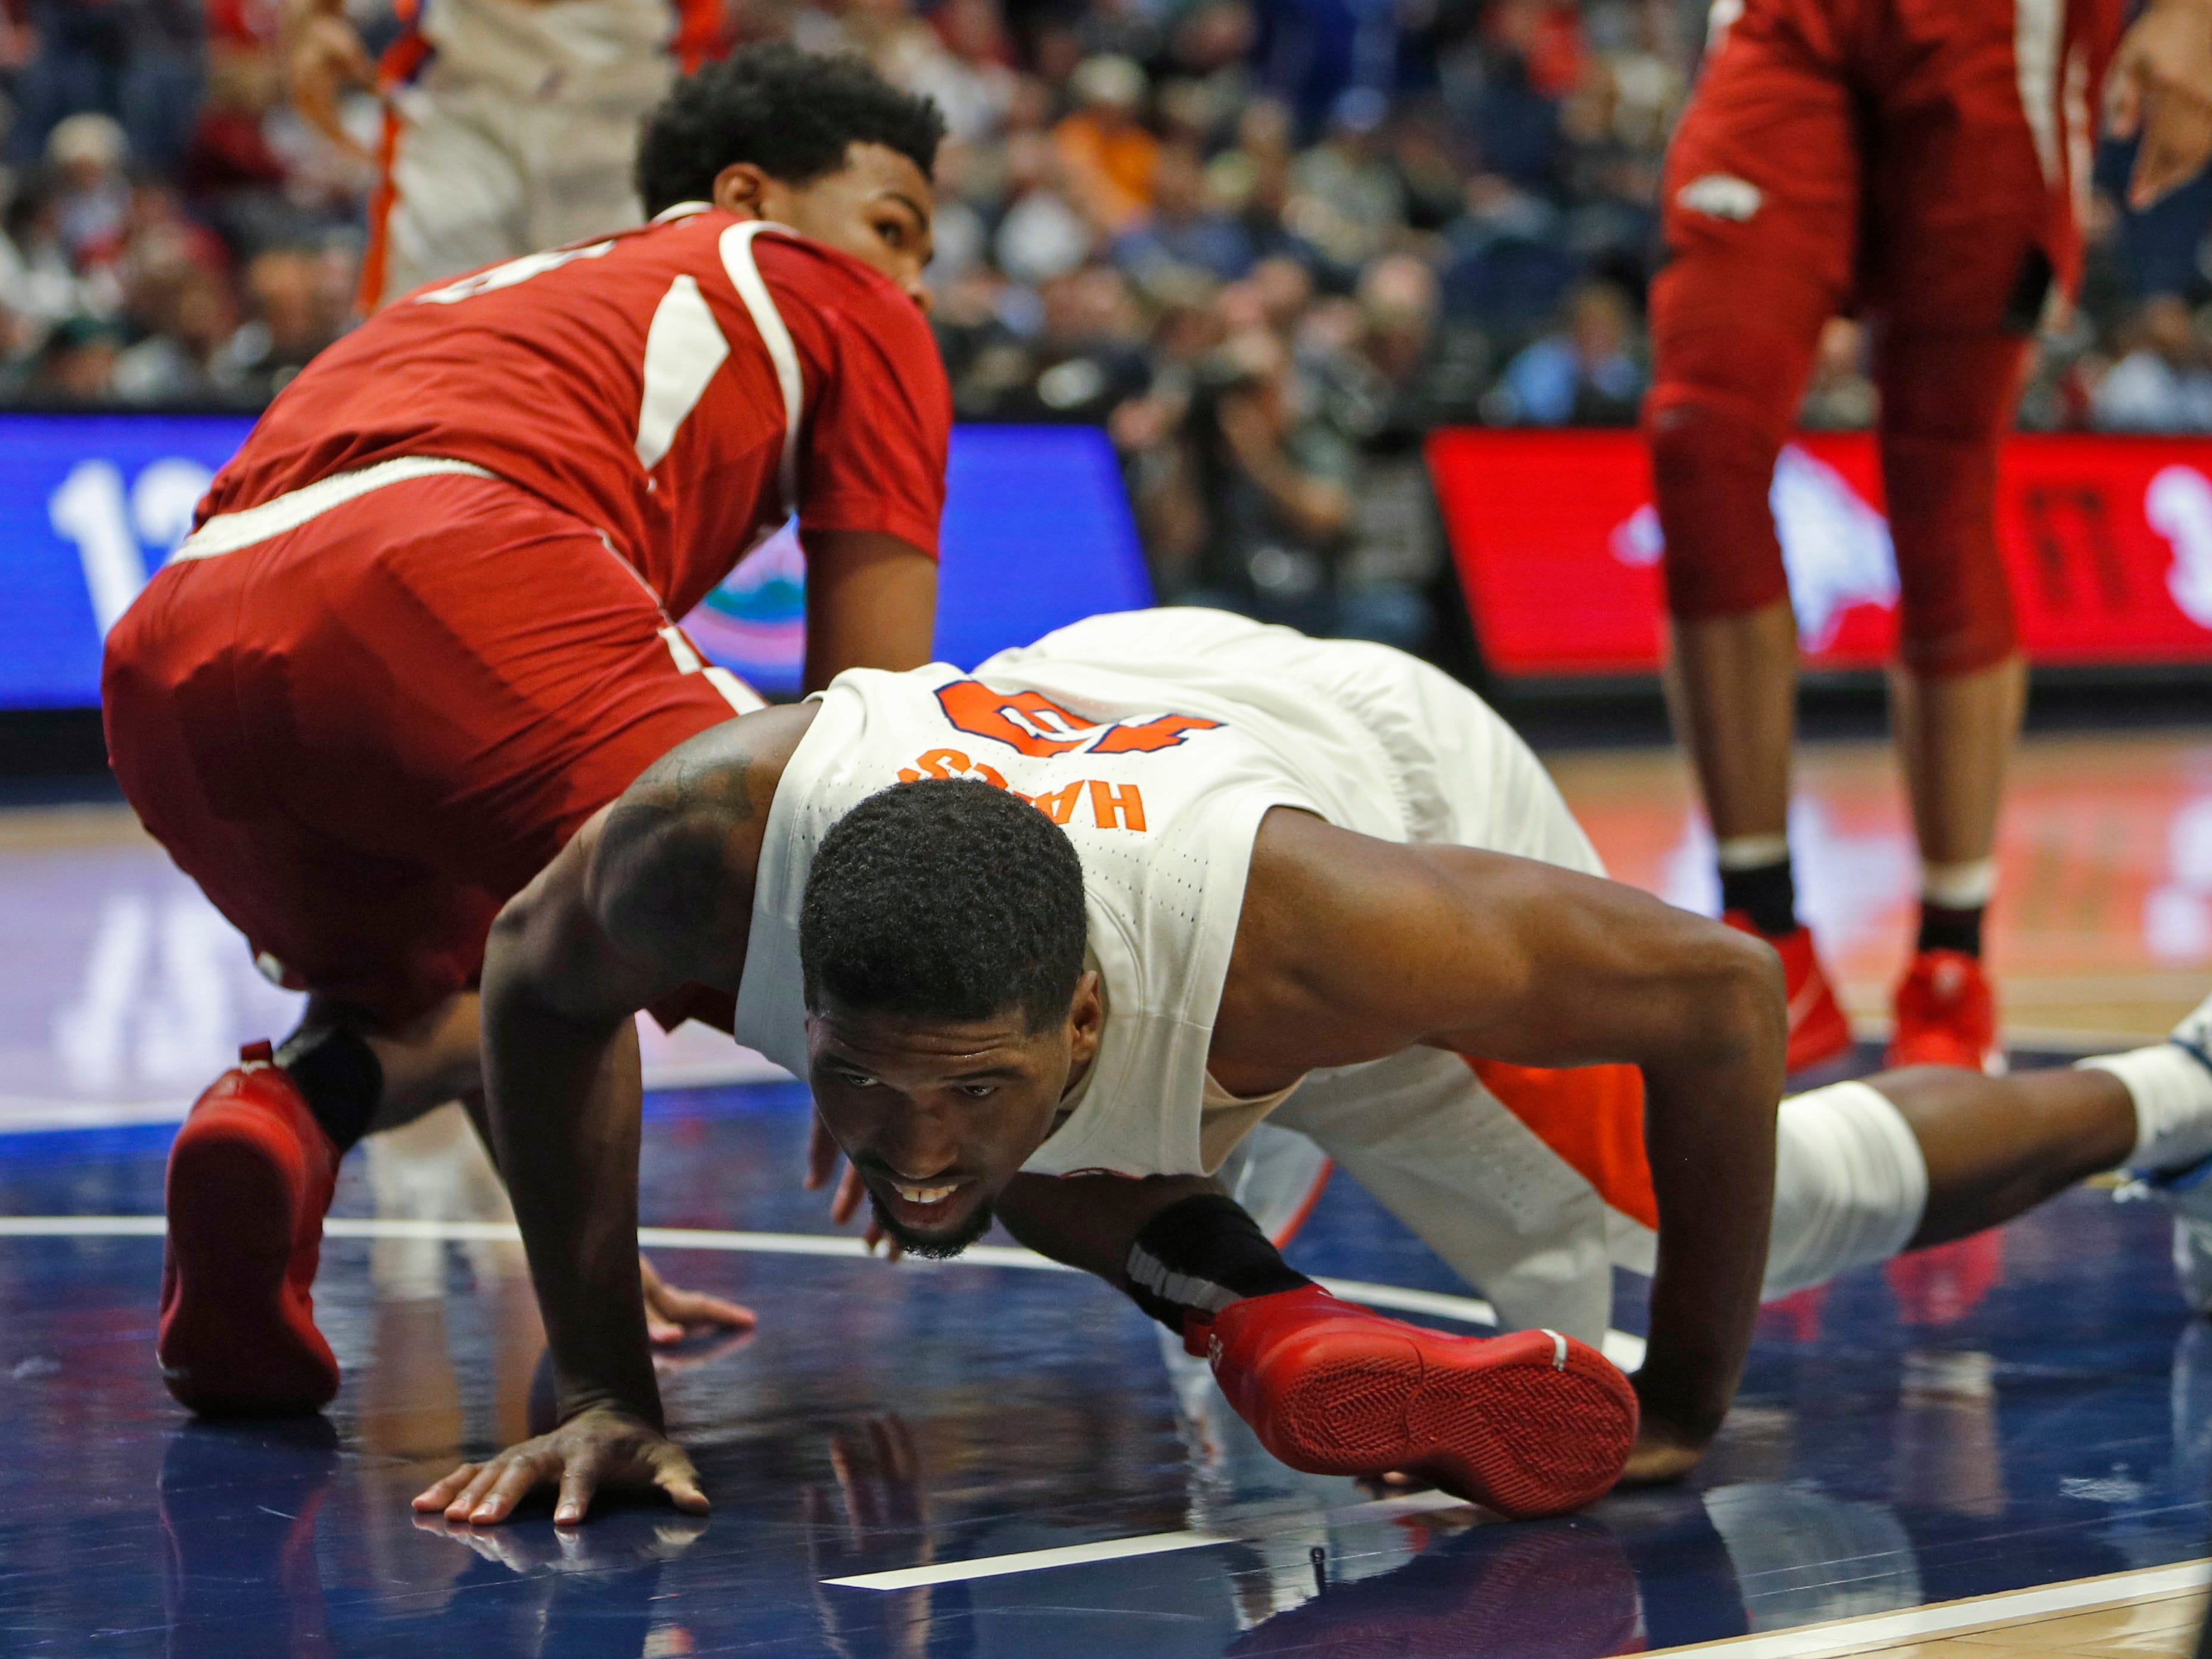 Florida center Kevarrius Hayes (13) looks up after colliding with an Arkansas player in the second half of the SEC Men's Basketball Tournament game at Bridgestone Arena in Nashville, Tenn., Thursday, March 14, 2019.